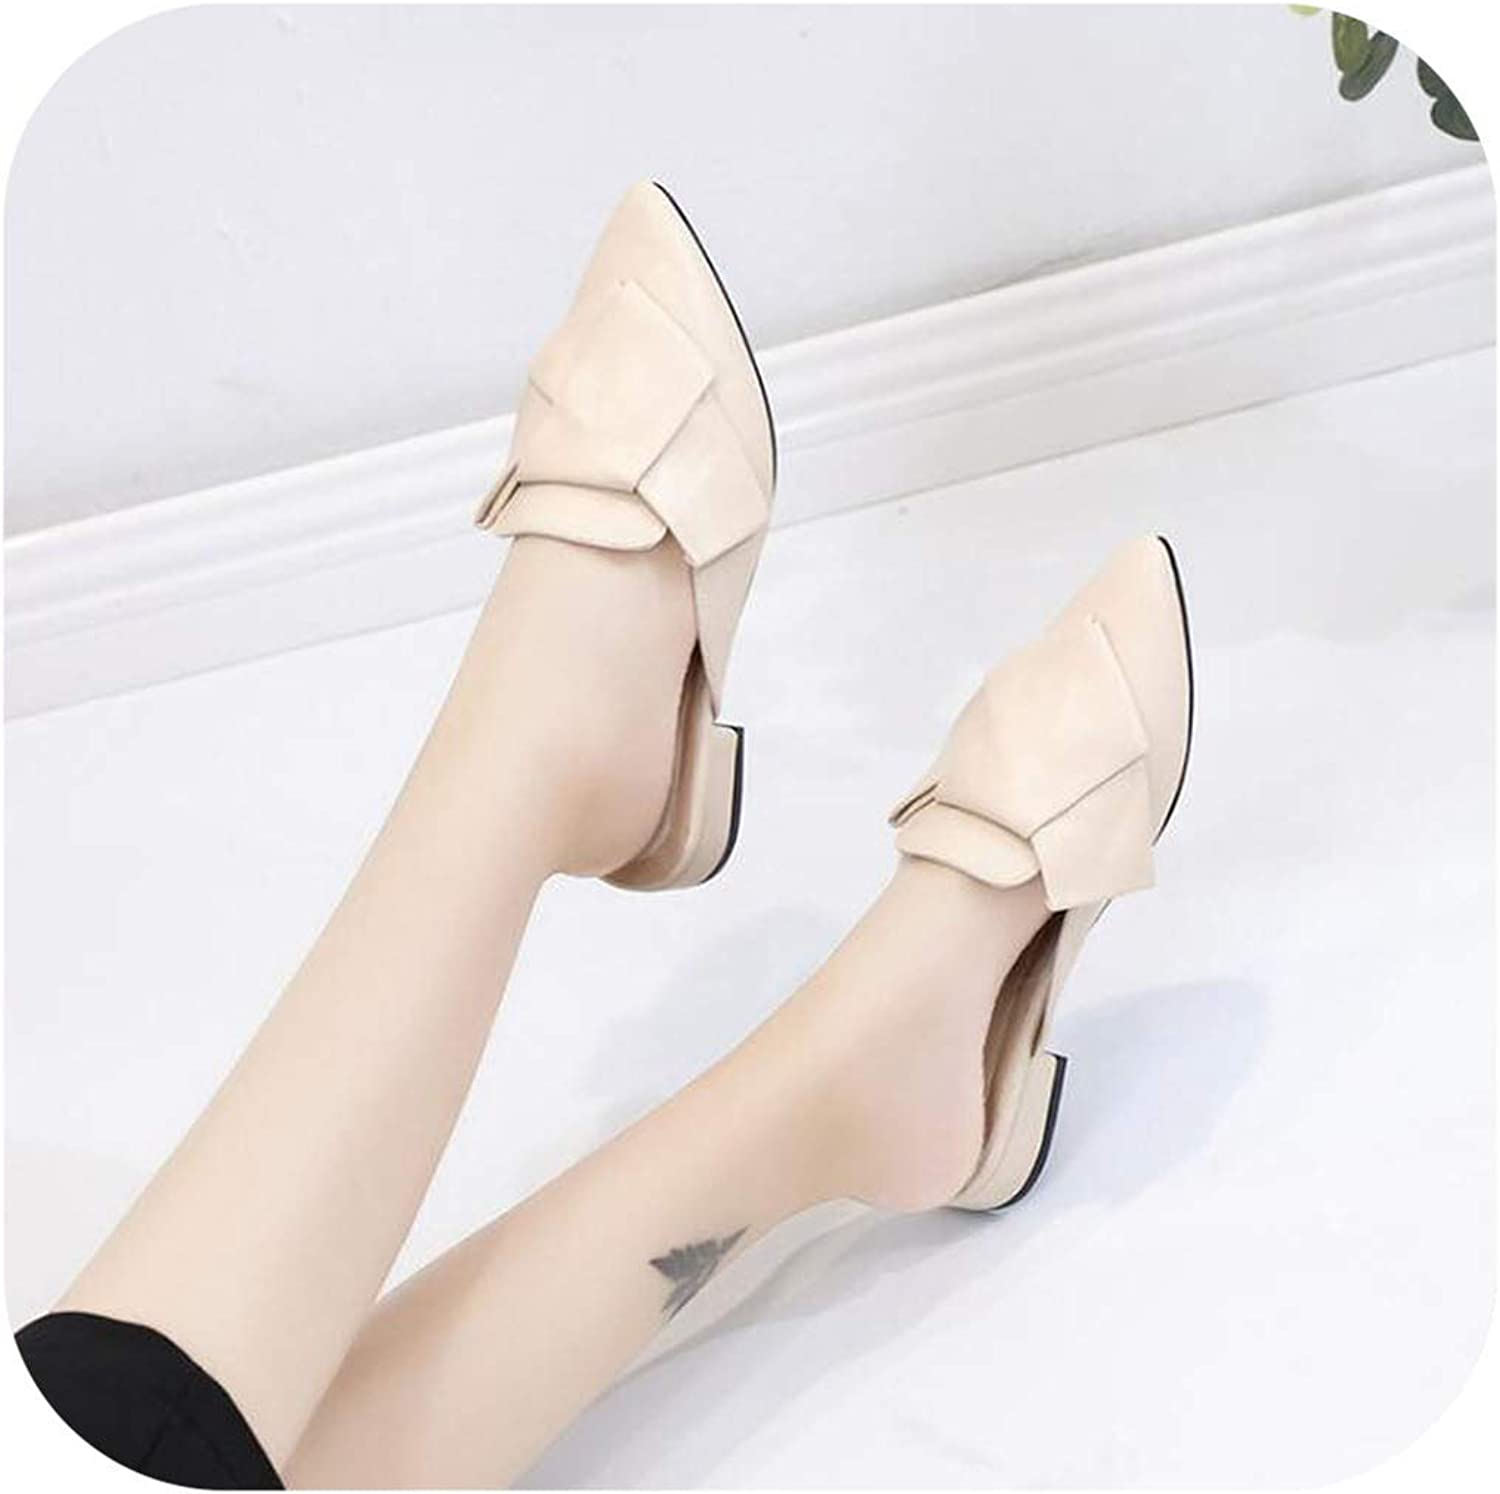 Size 43 Slippers Women Muller Low Heel shoes Butterfly-Knot Slippers Pointed Toe Leather shoes